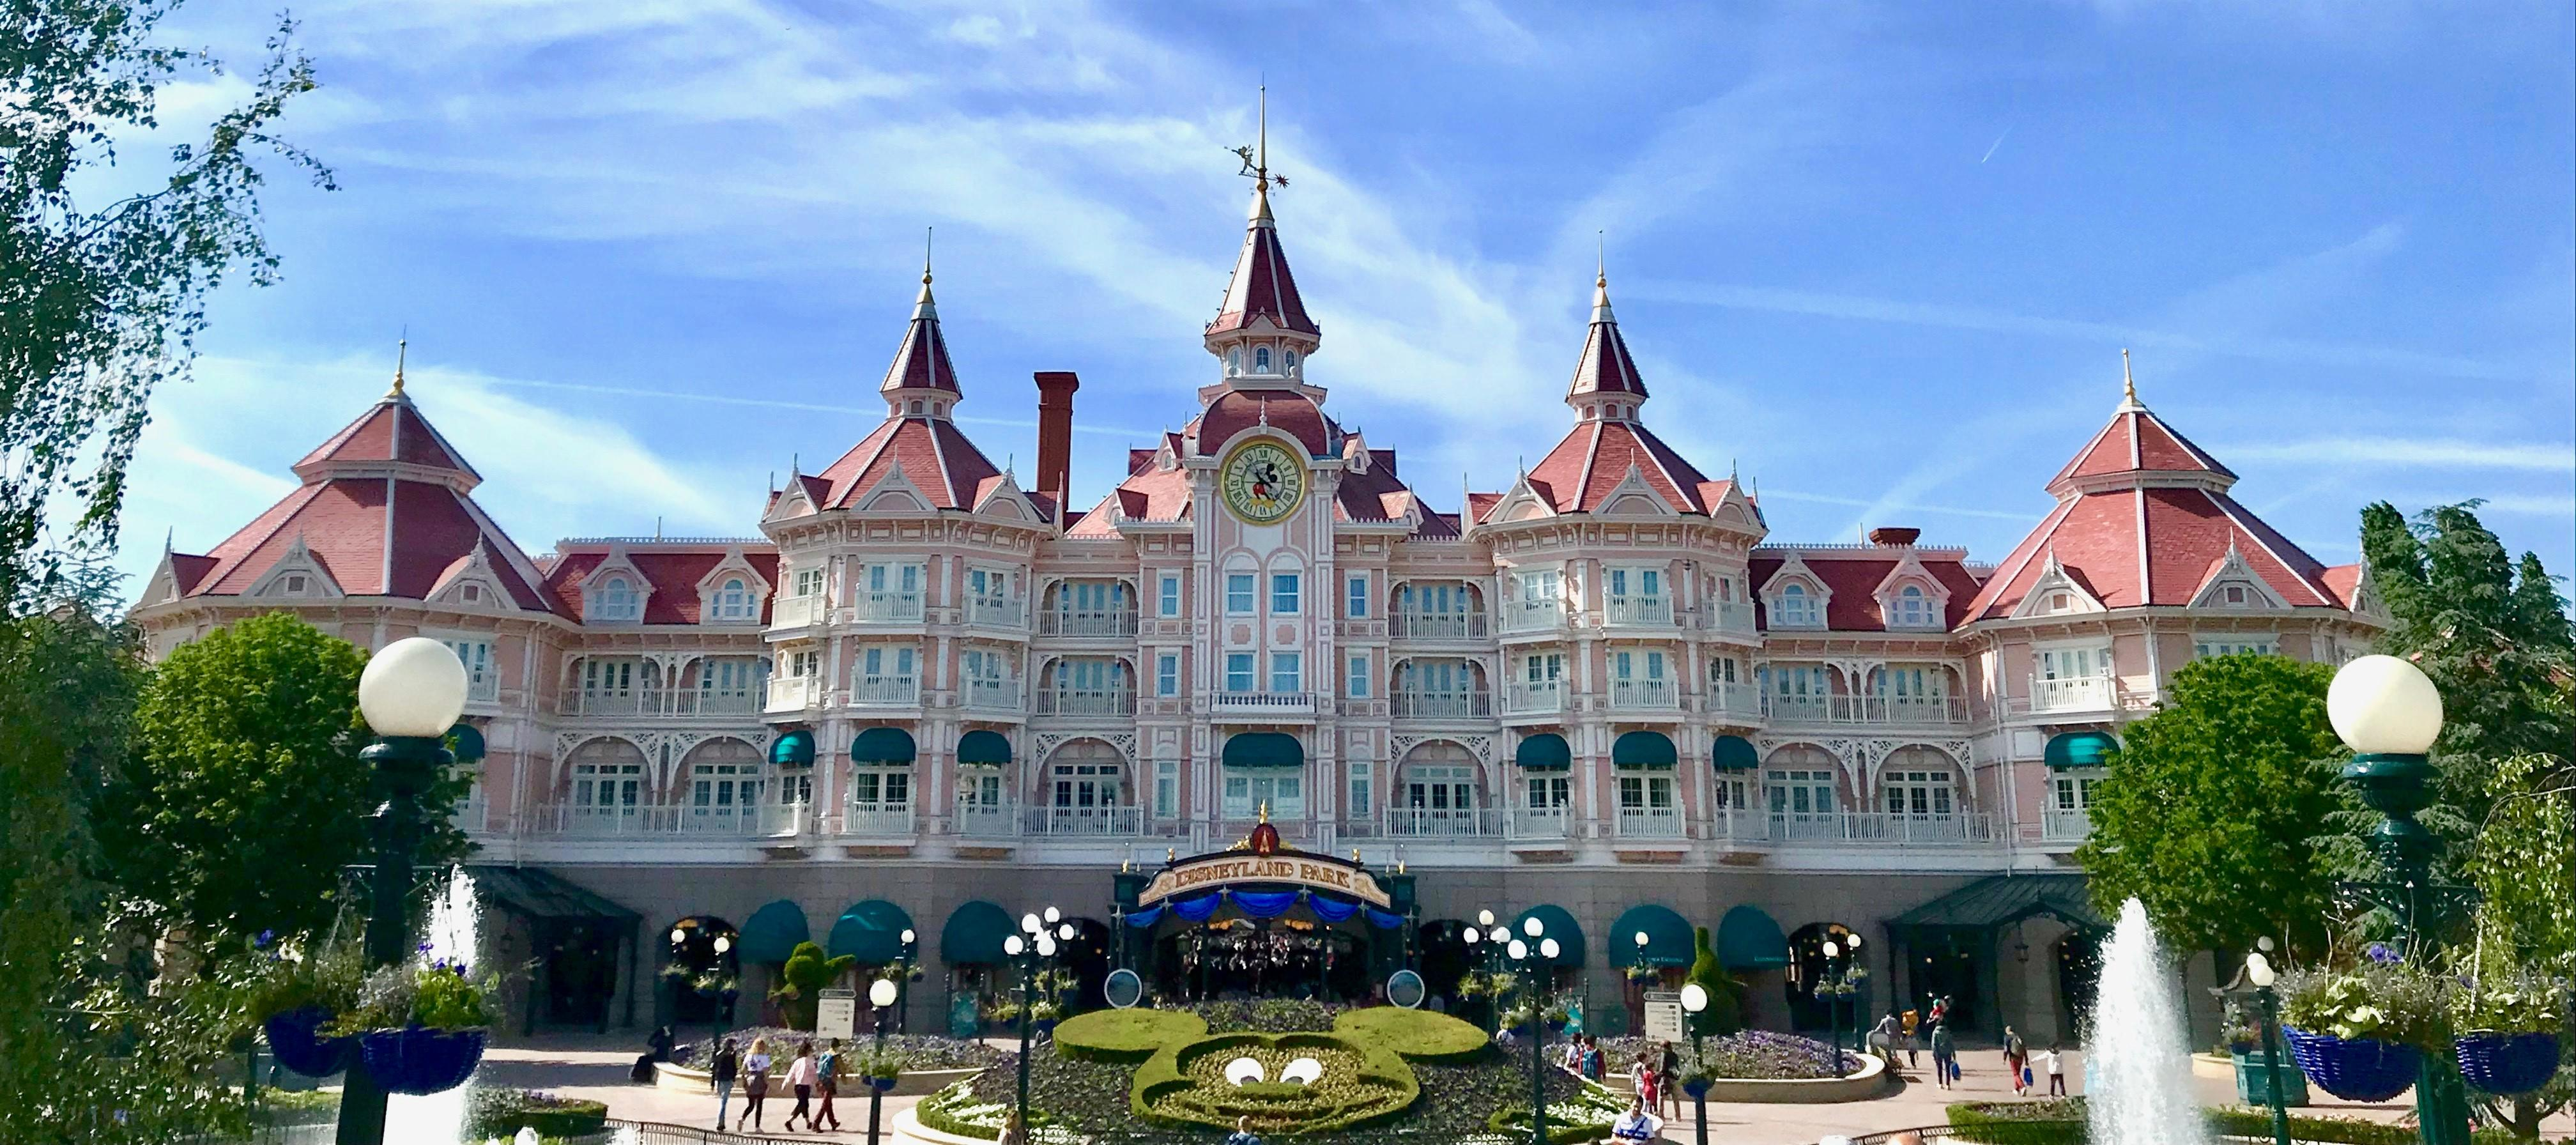 Disney Hotel at Disneyland Paris